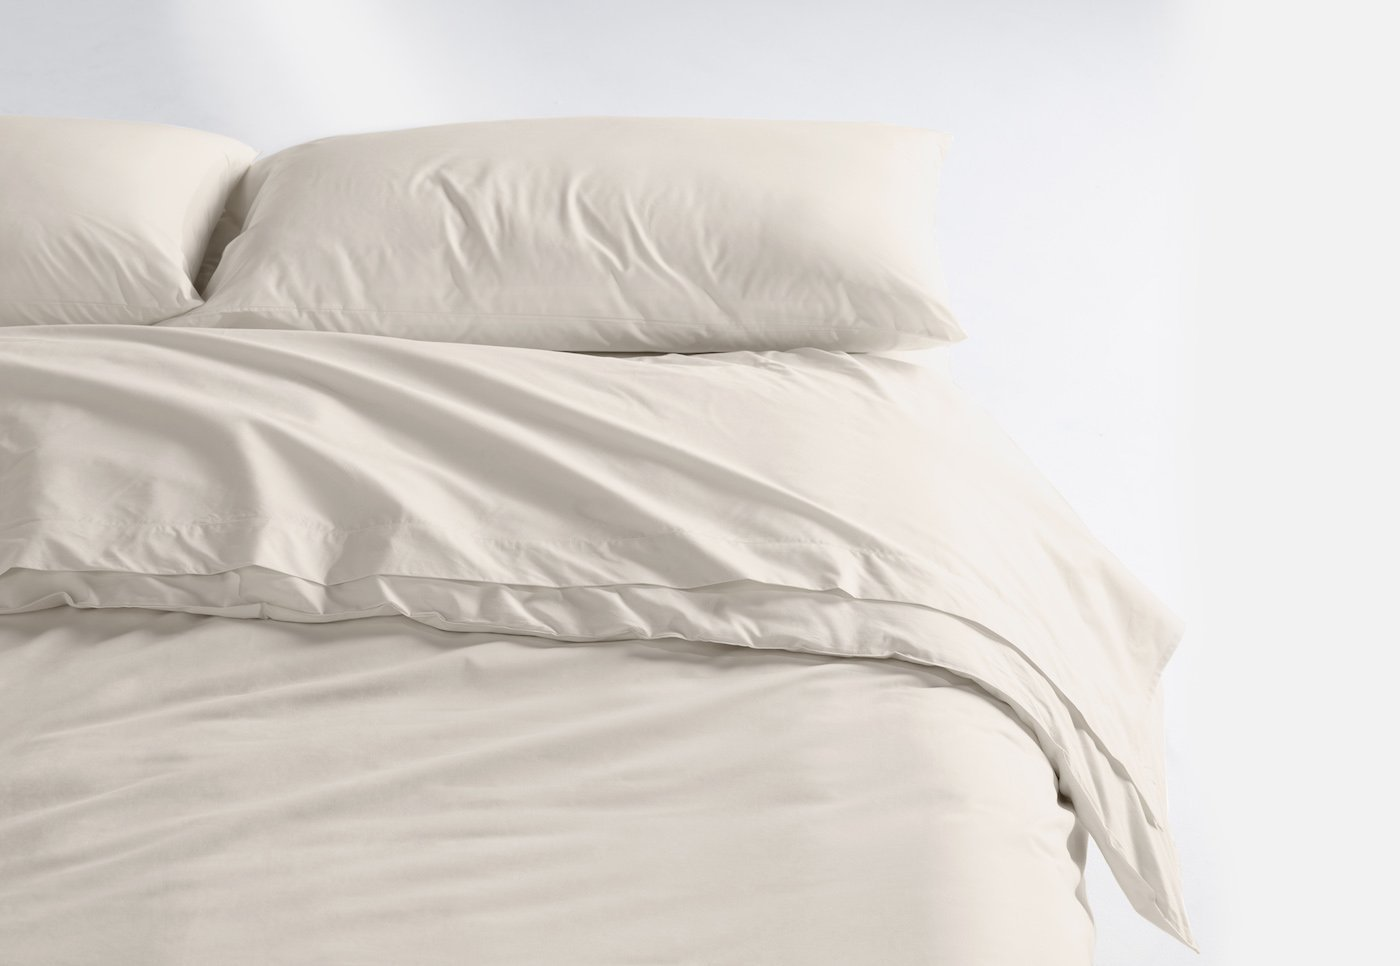 Image of Casper Sheet Set Durable Supima Cotton - What Is Supima Cotton